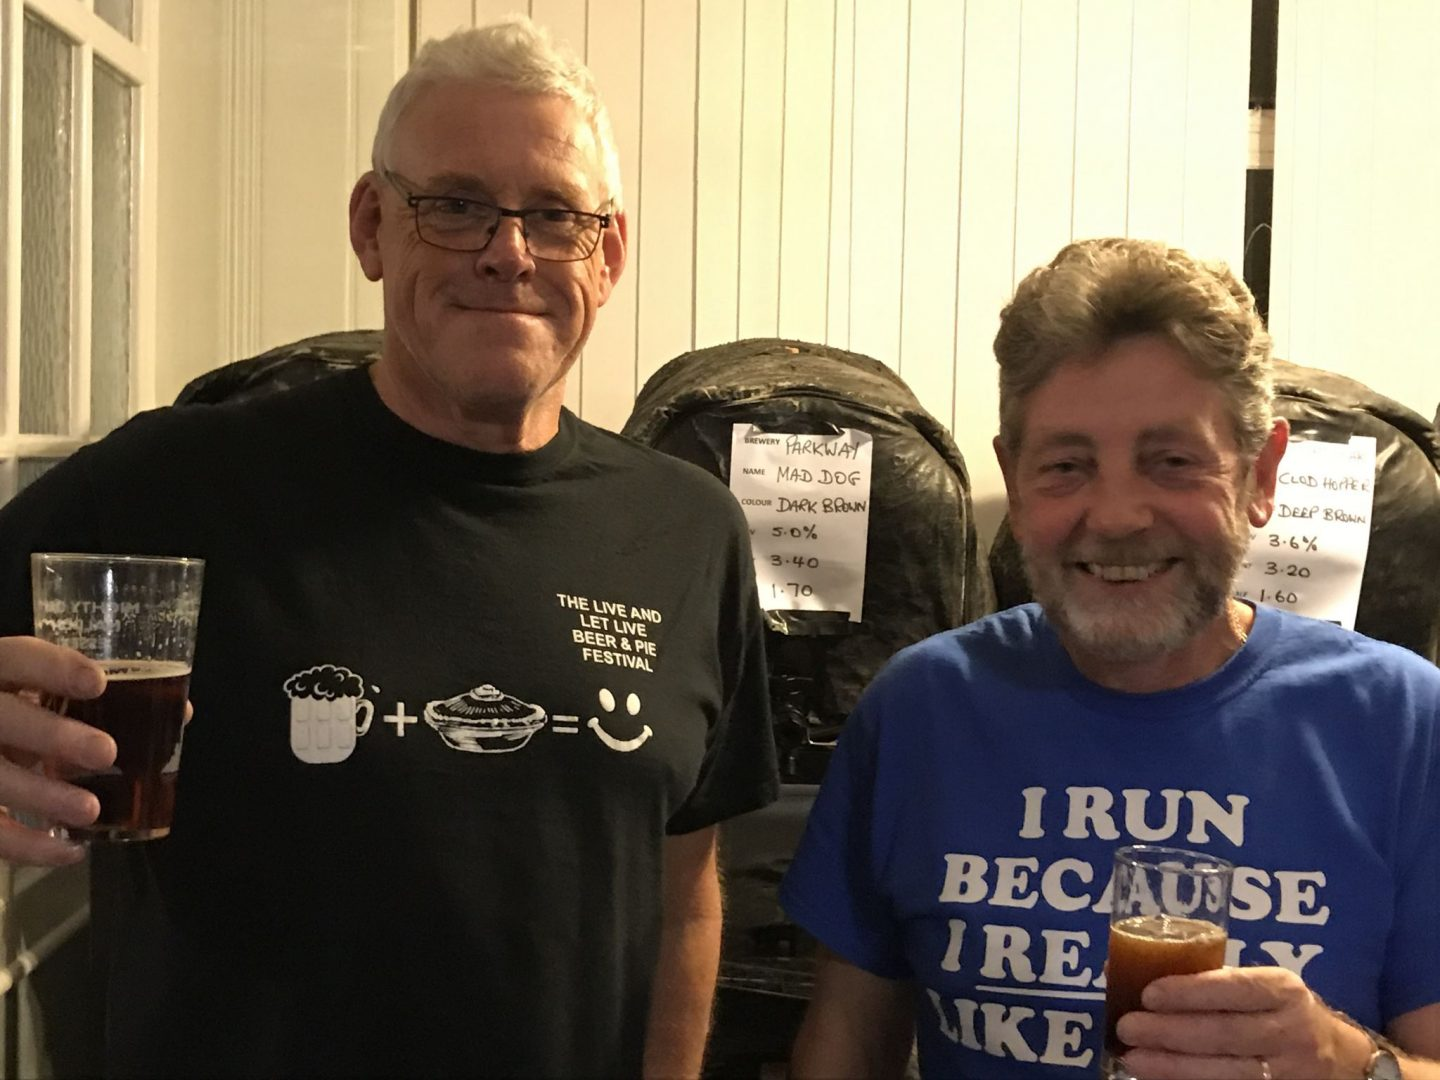 The Live and Let Live Beer and Pie Festival